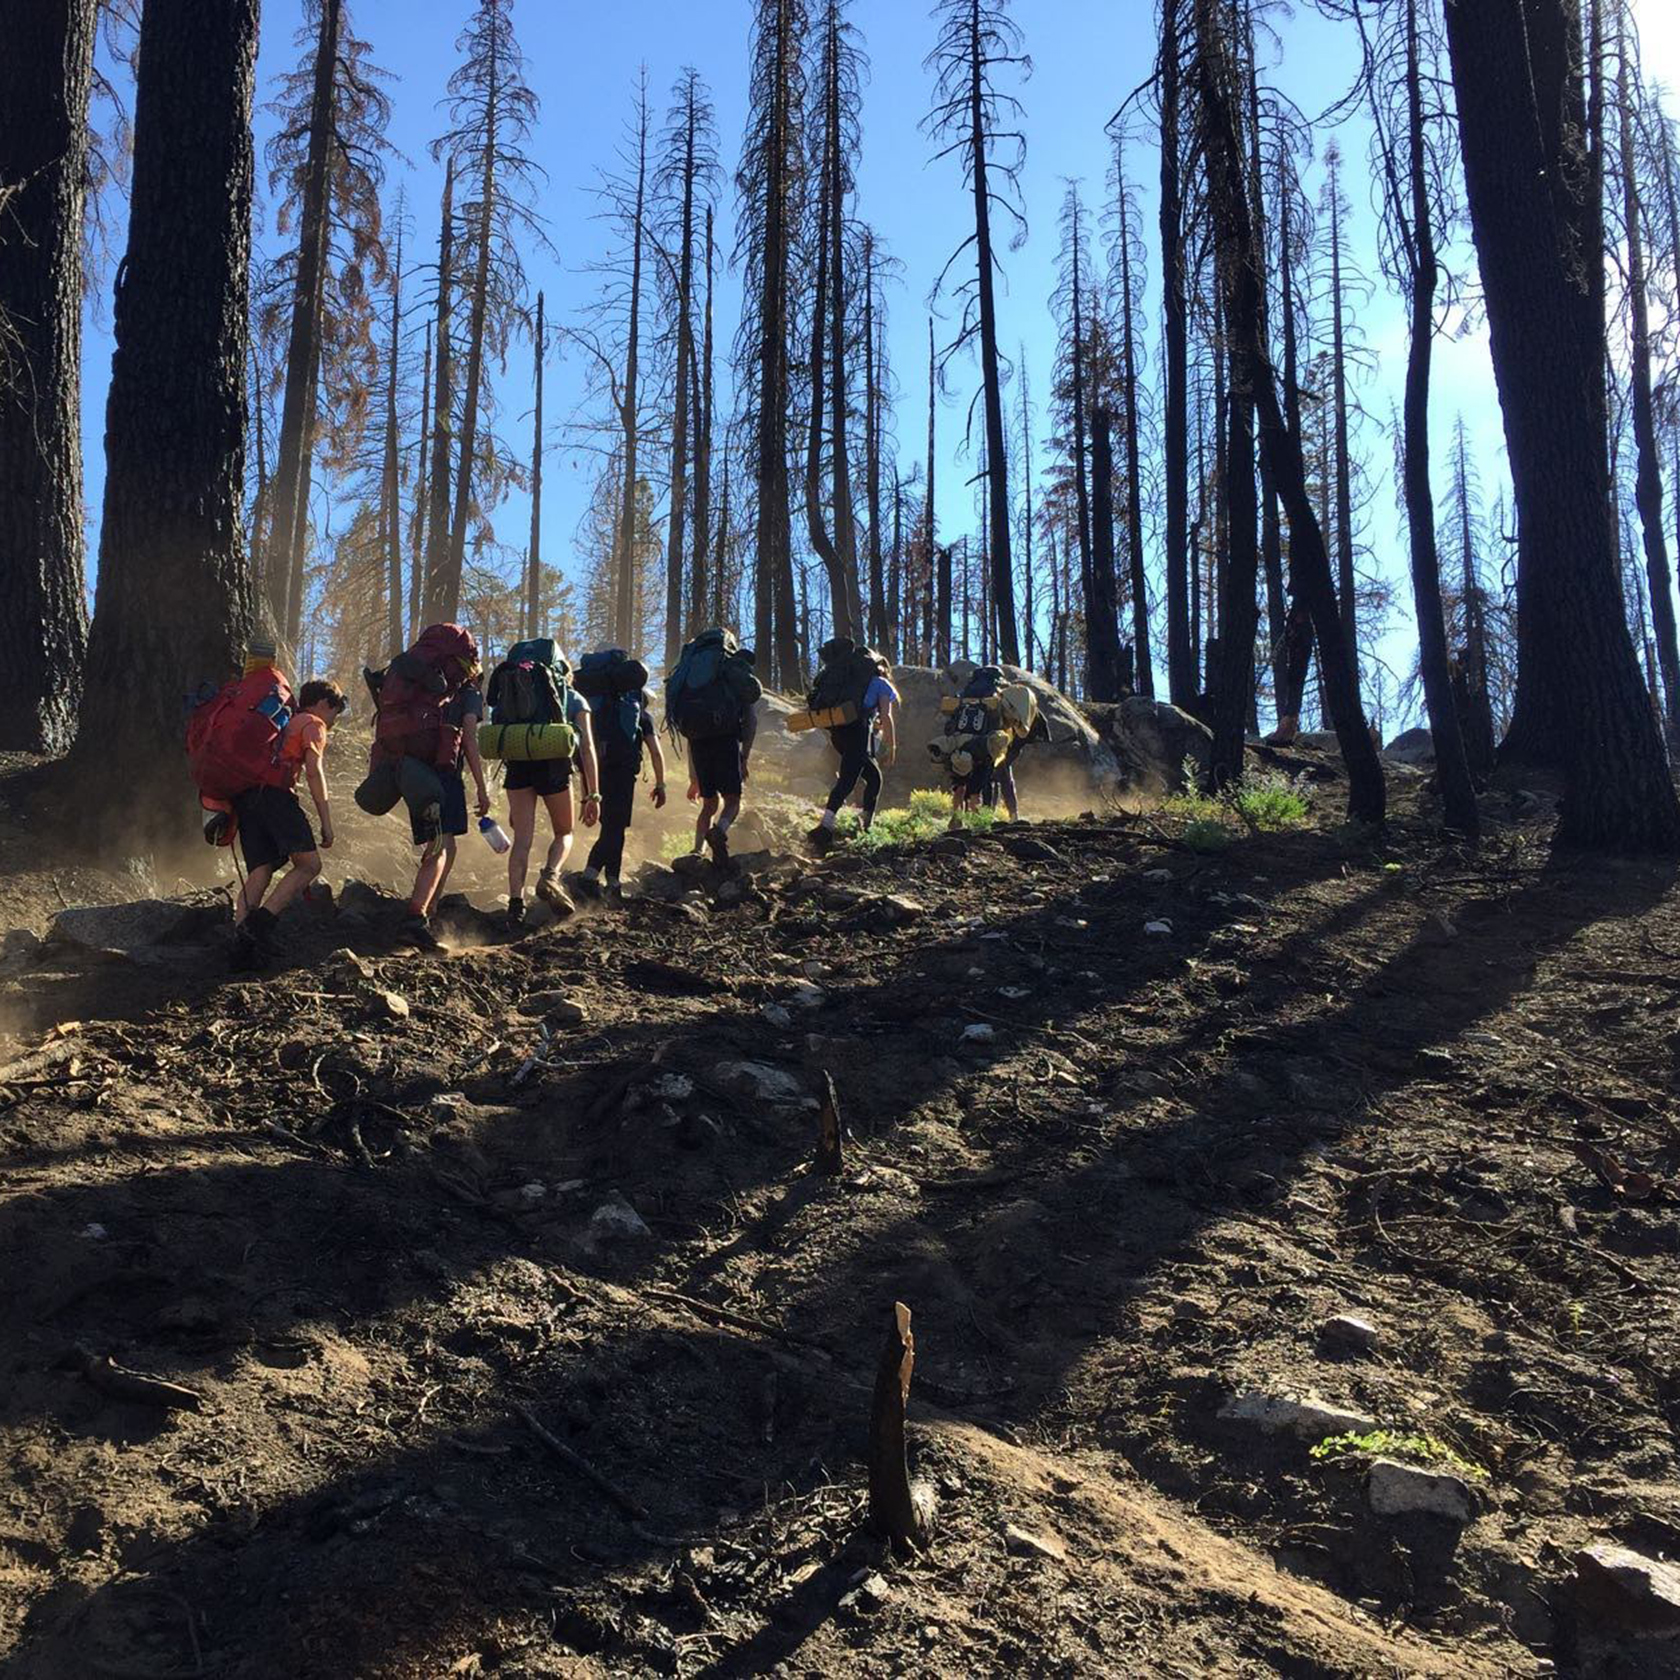 Backpacking on the California Explorer trip